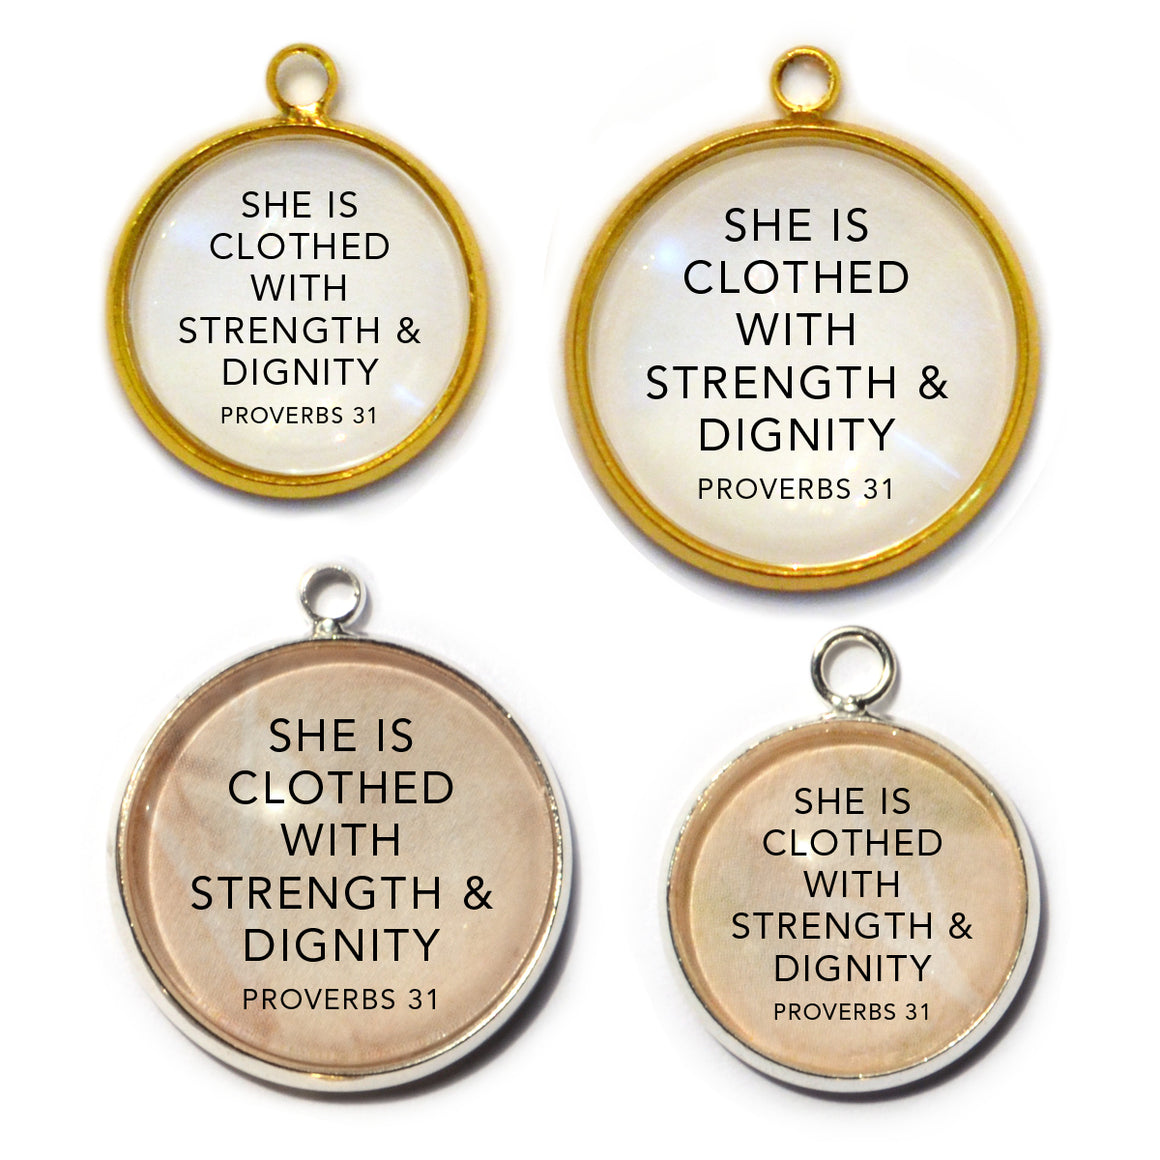 """Strength & Dignity"" Proverbs 31 Scripture Charms for Jewelry Making"